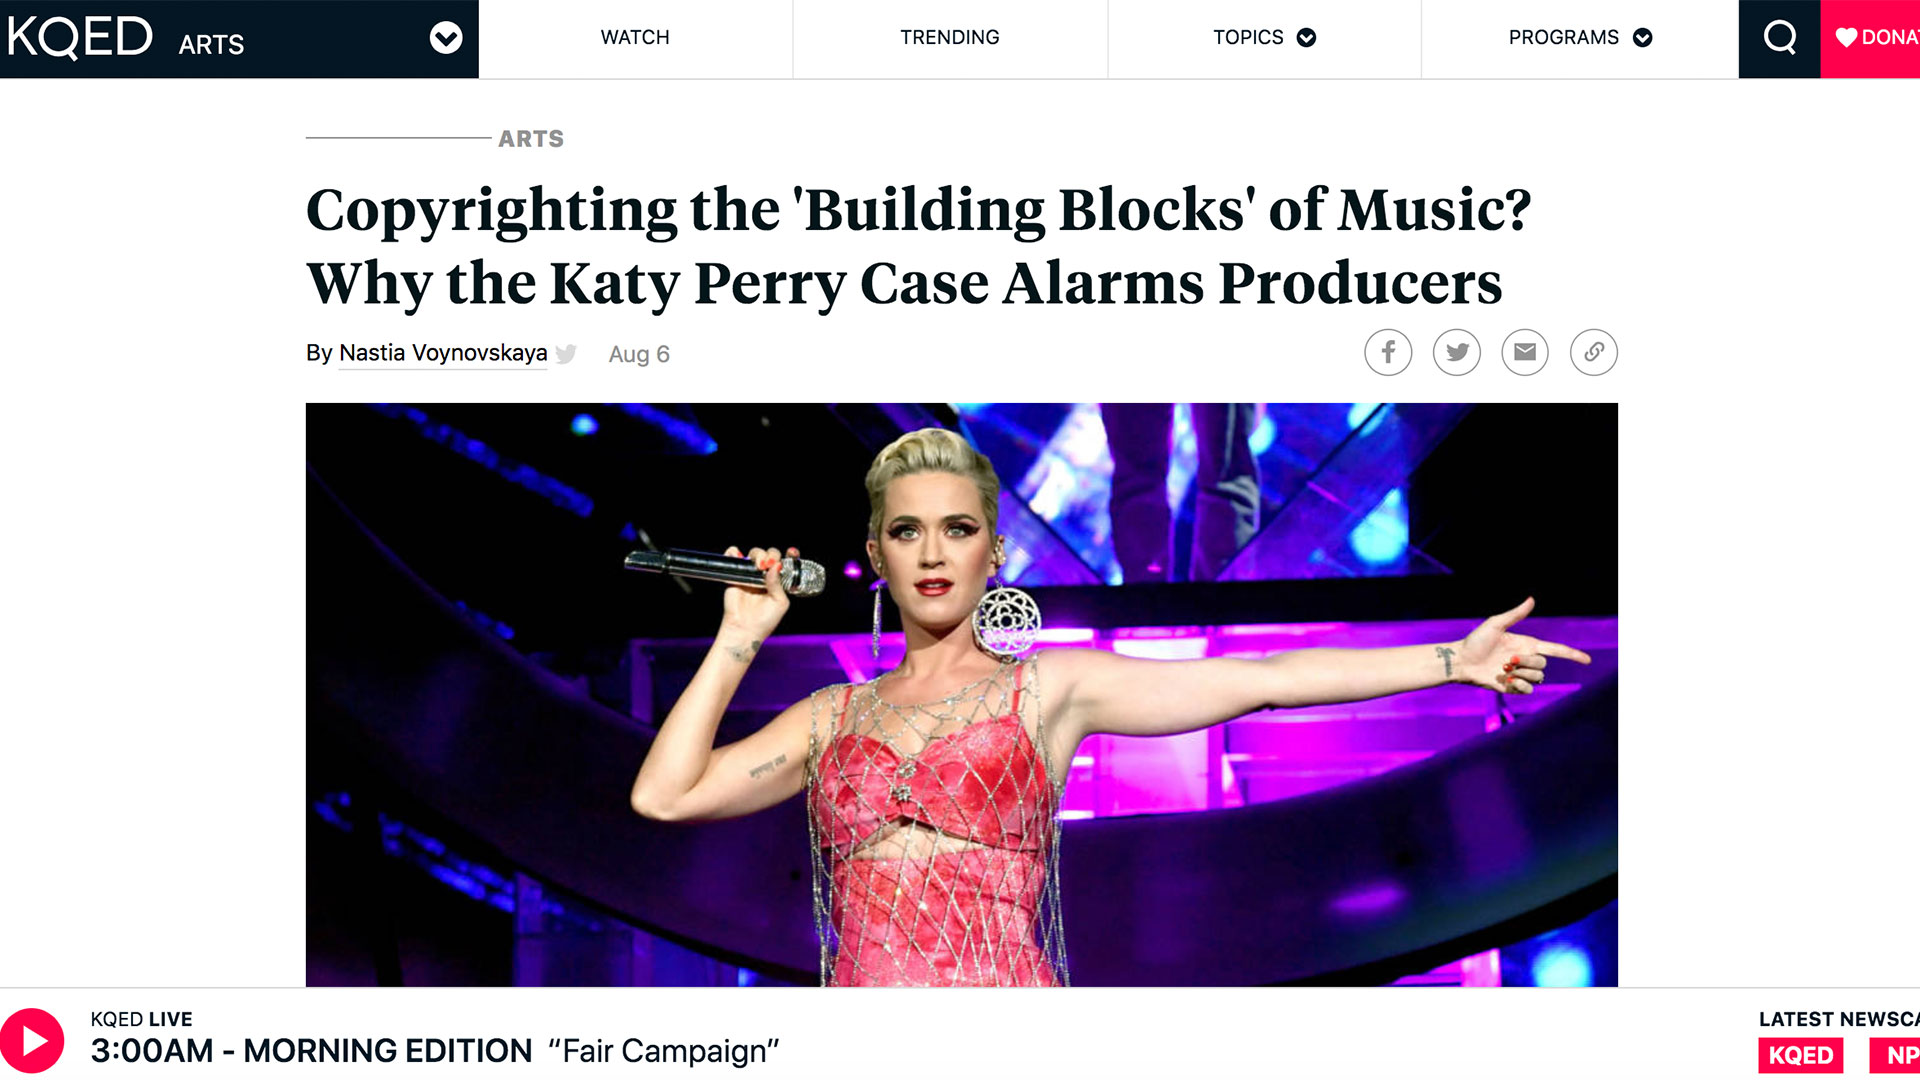 Fairness Rocks News Copyrighting the 'Building Blocks' of Music? Why the Katy Perry Case Alarms Producers